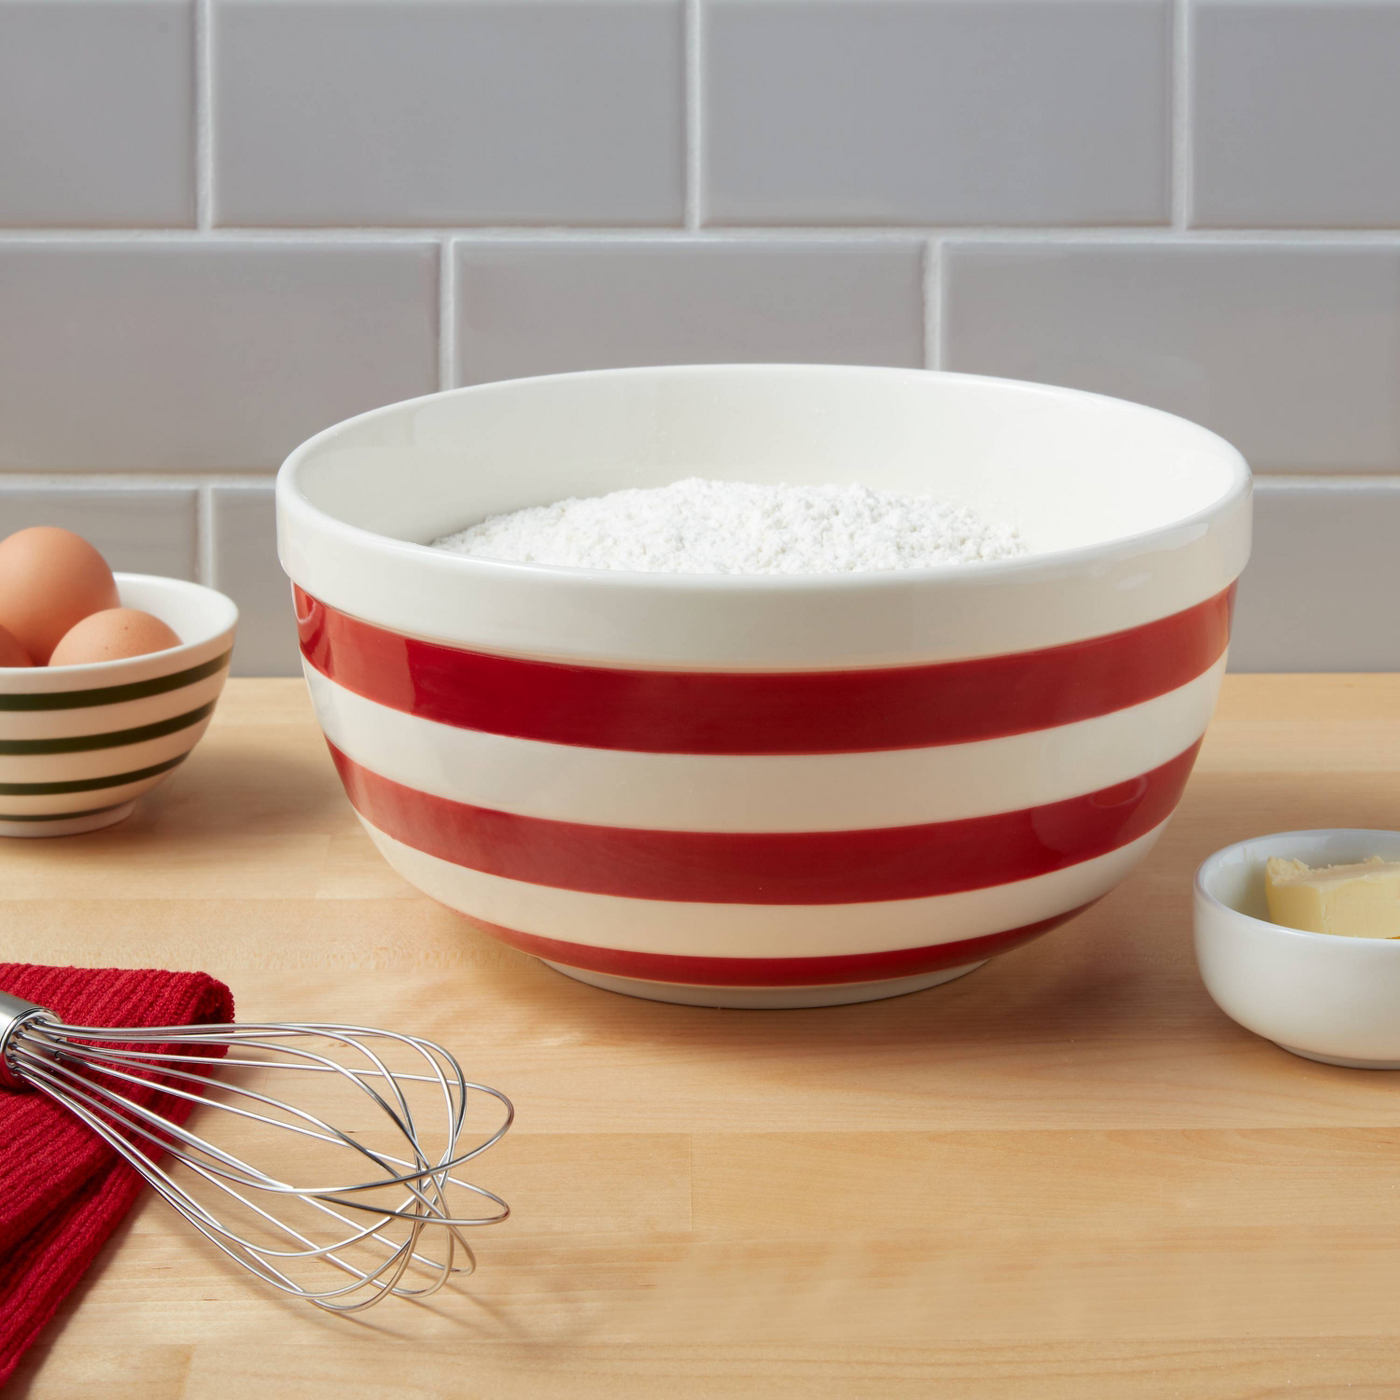 Red and white striped bowl with flour inside